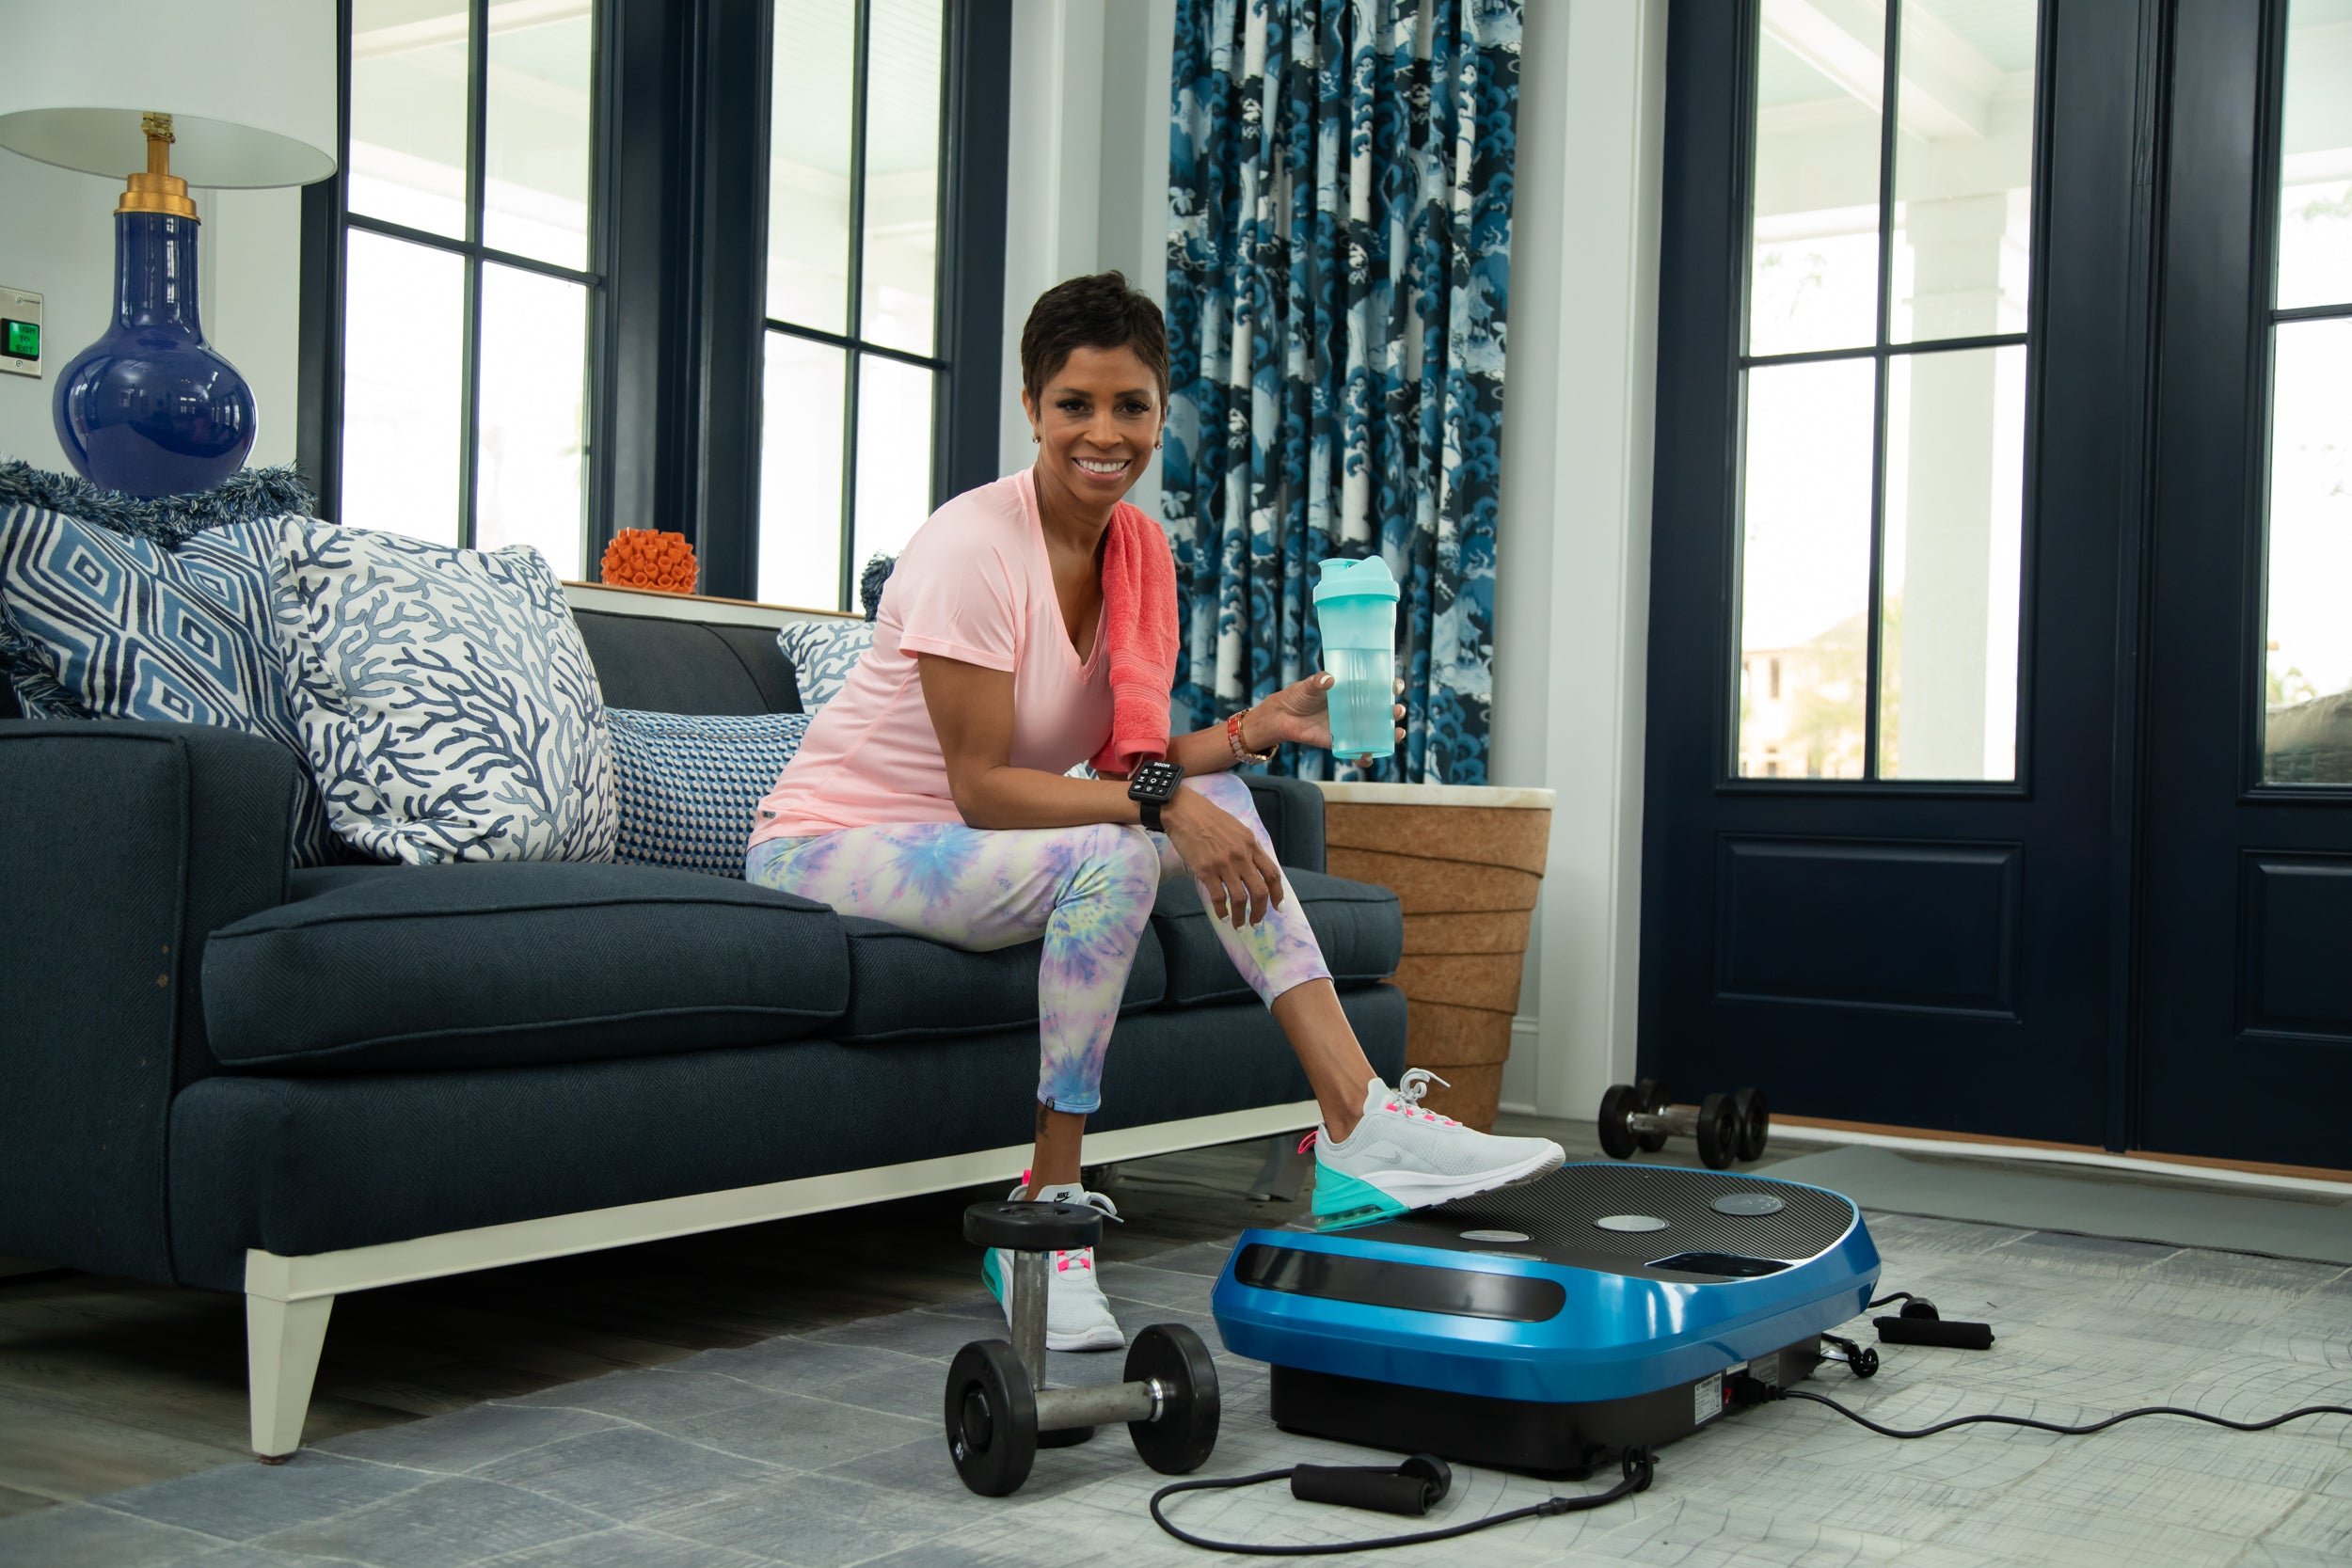 woman sitting on a couch drinking water next to a vibration plate and other exercise equipment